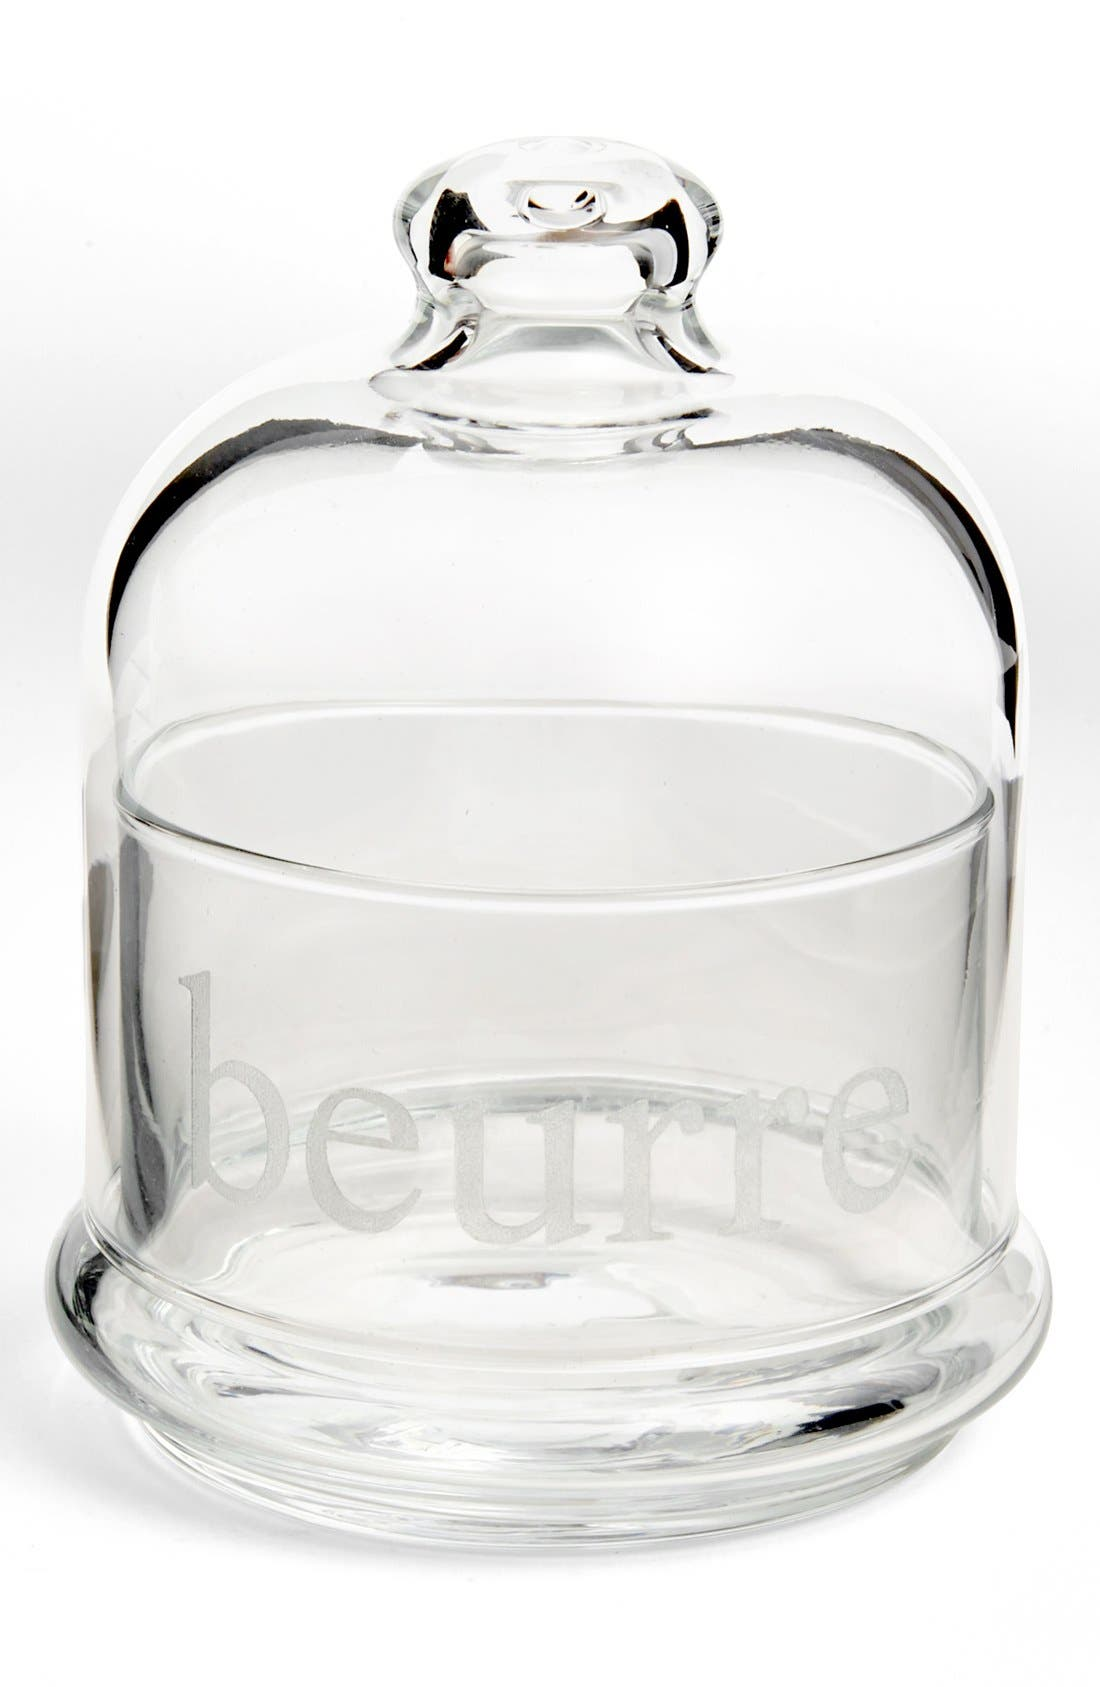 Alternate Image 1 Selected - Milk and Honey Luxuries 'Beurre' Butter Dish